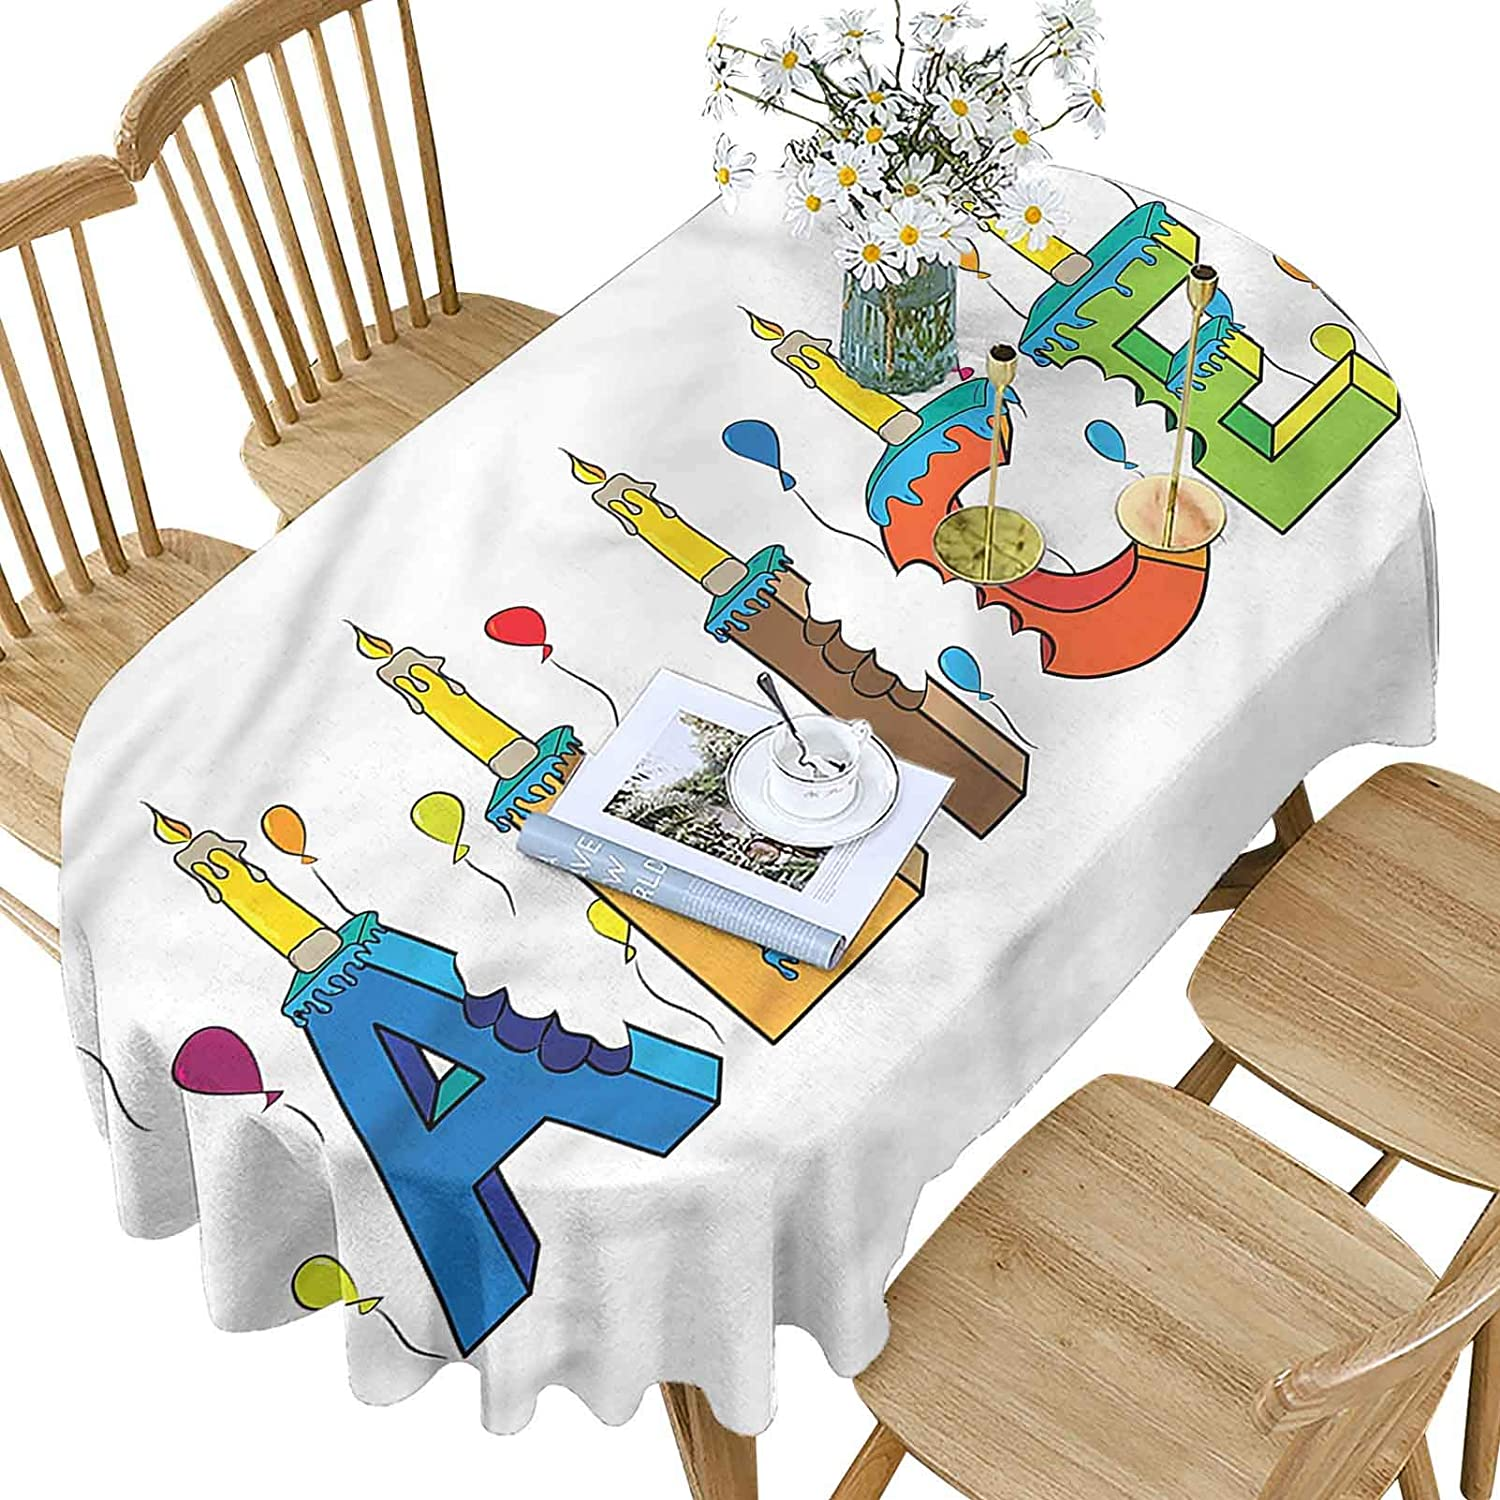 Alice Polyester Max 55% OFF Oval Tablecloth Colorful Max 60% OFF Patter Girl Name Design